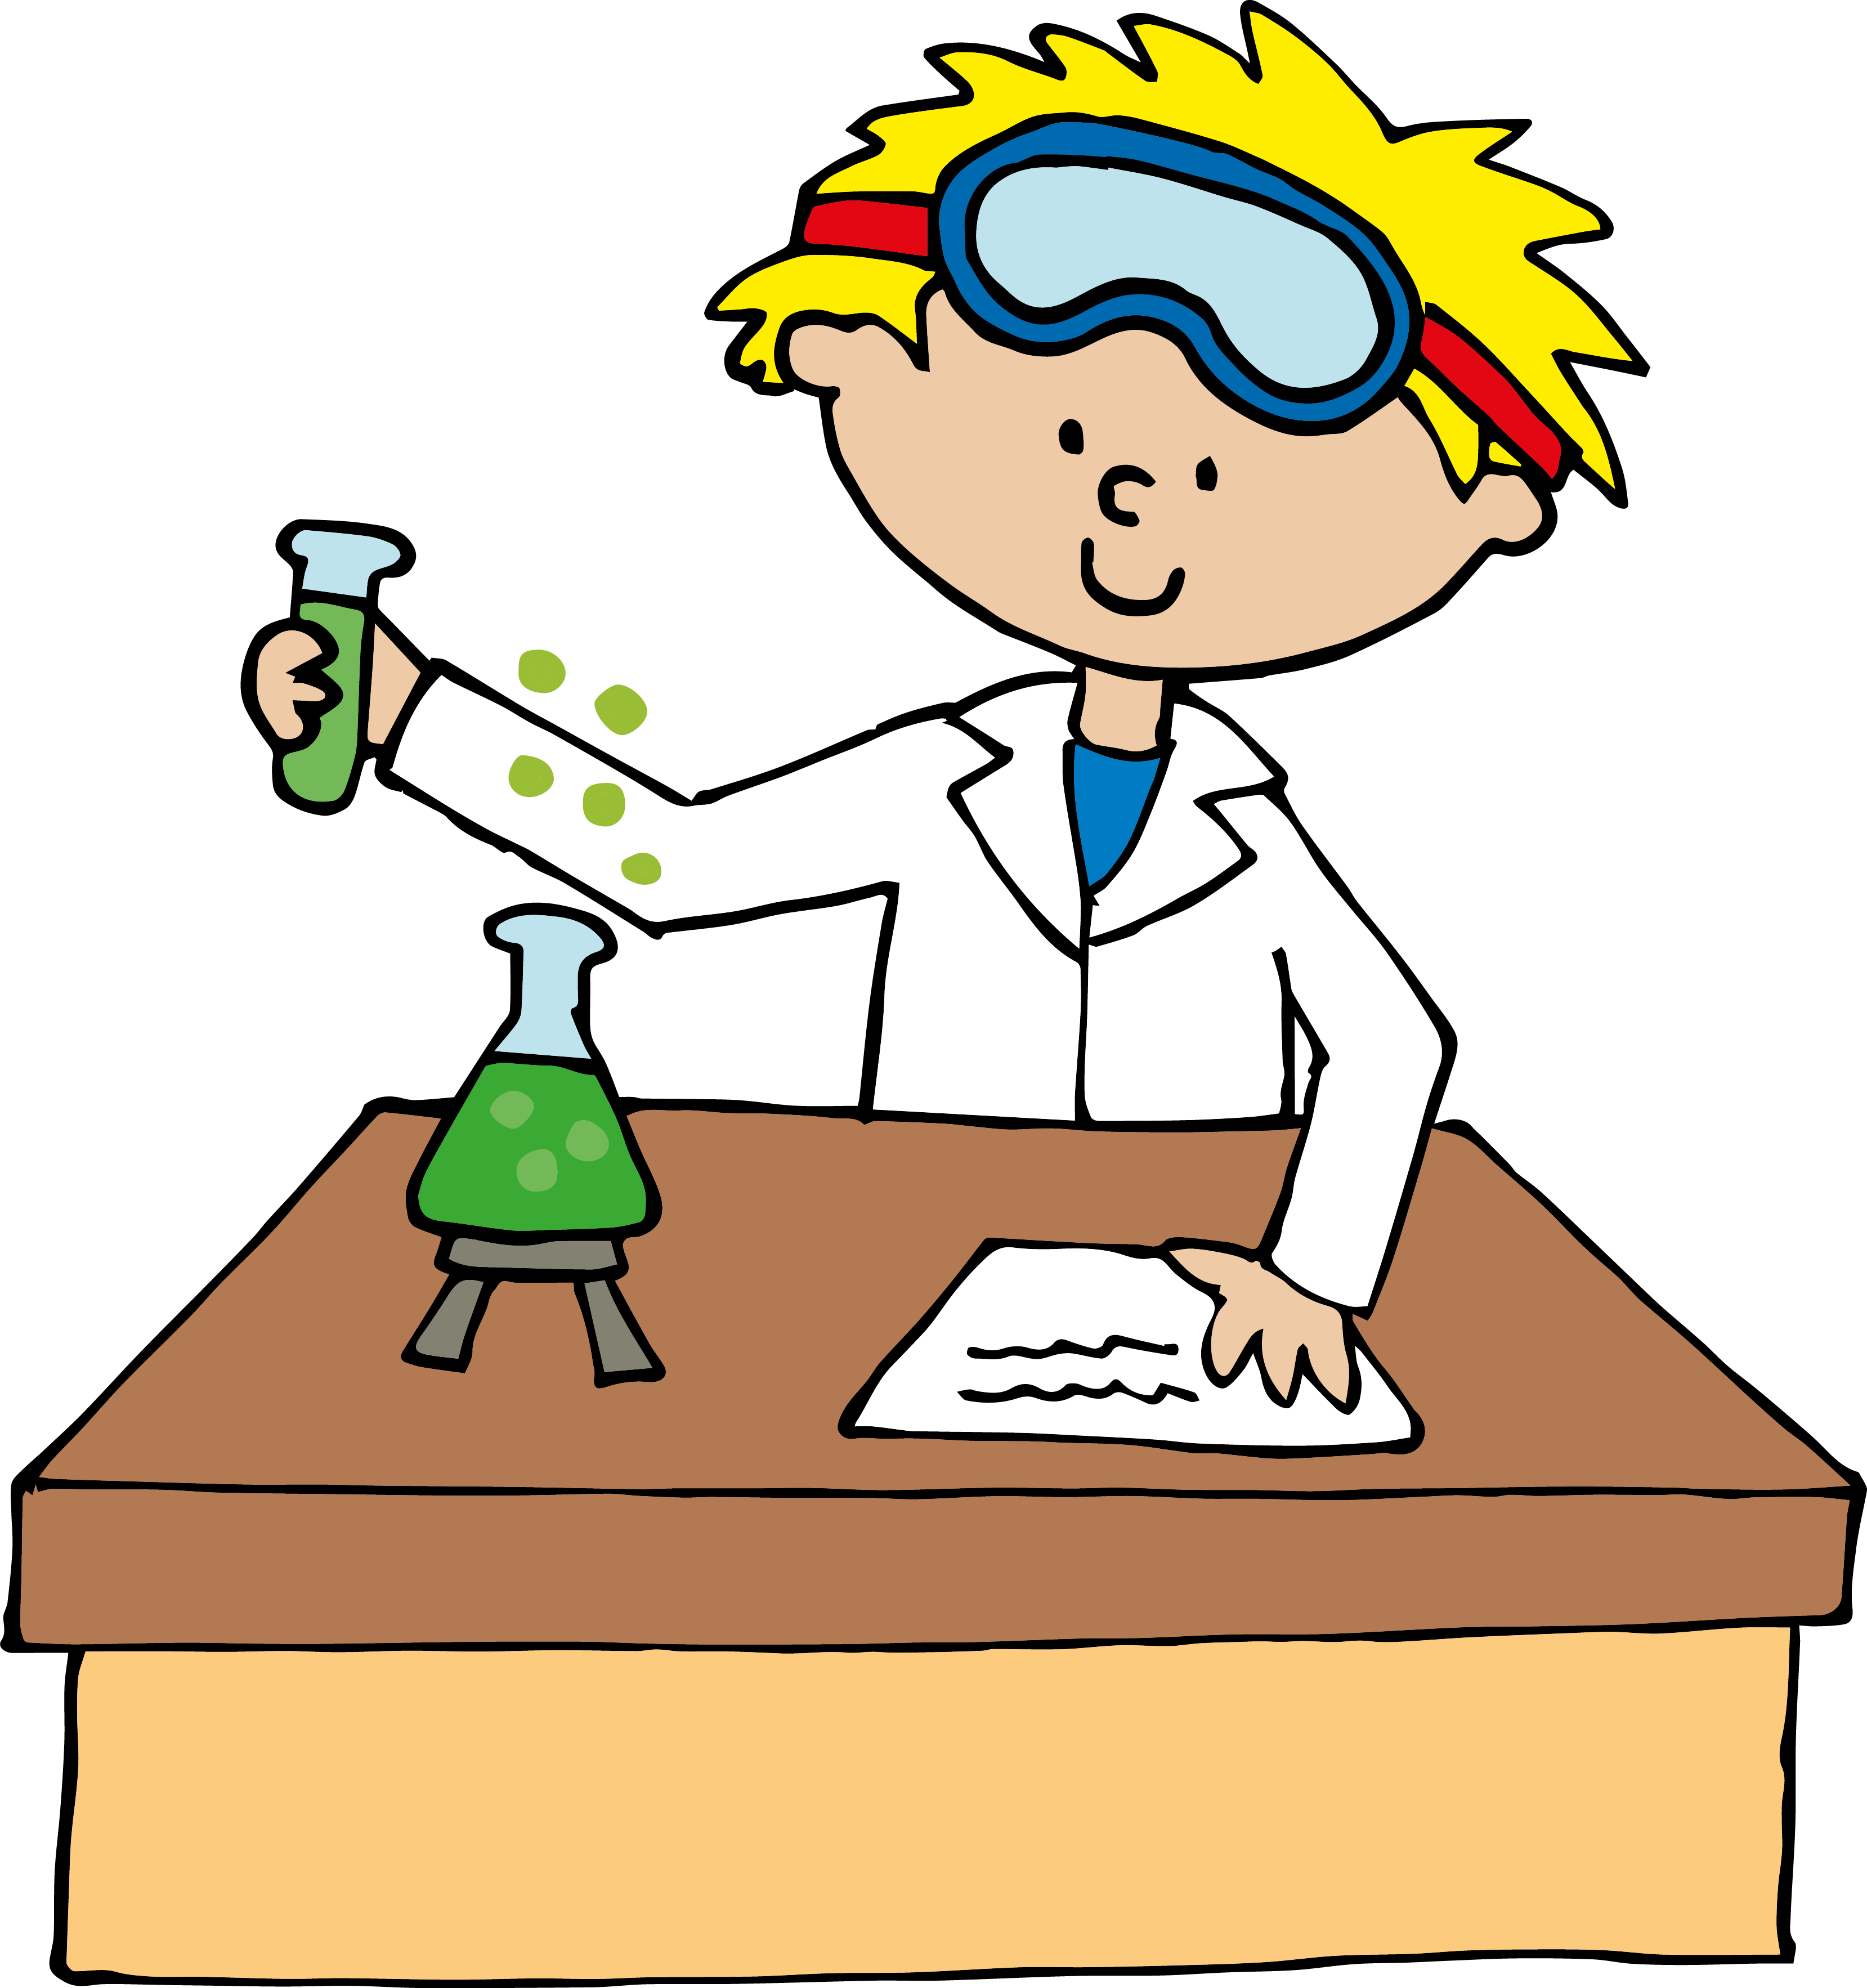 Cliparthot of science sciences. Engineer clipart agricultural engineering